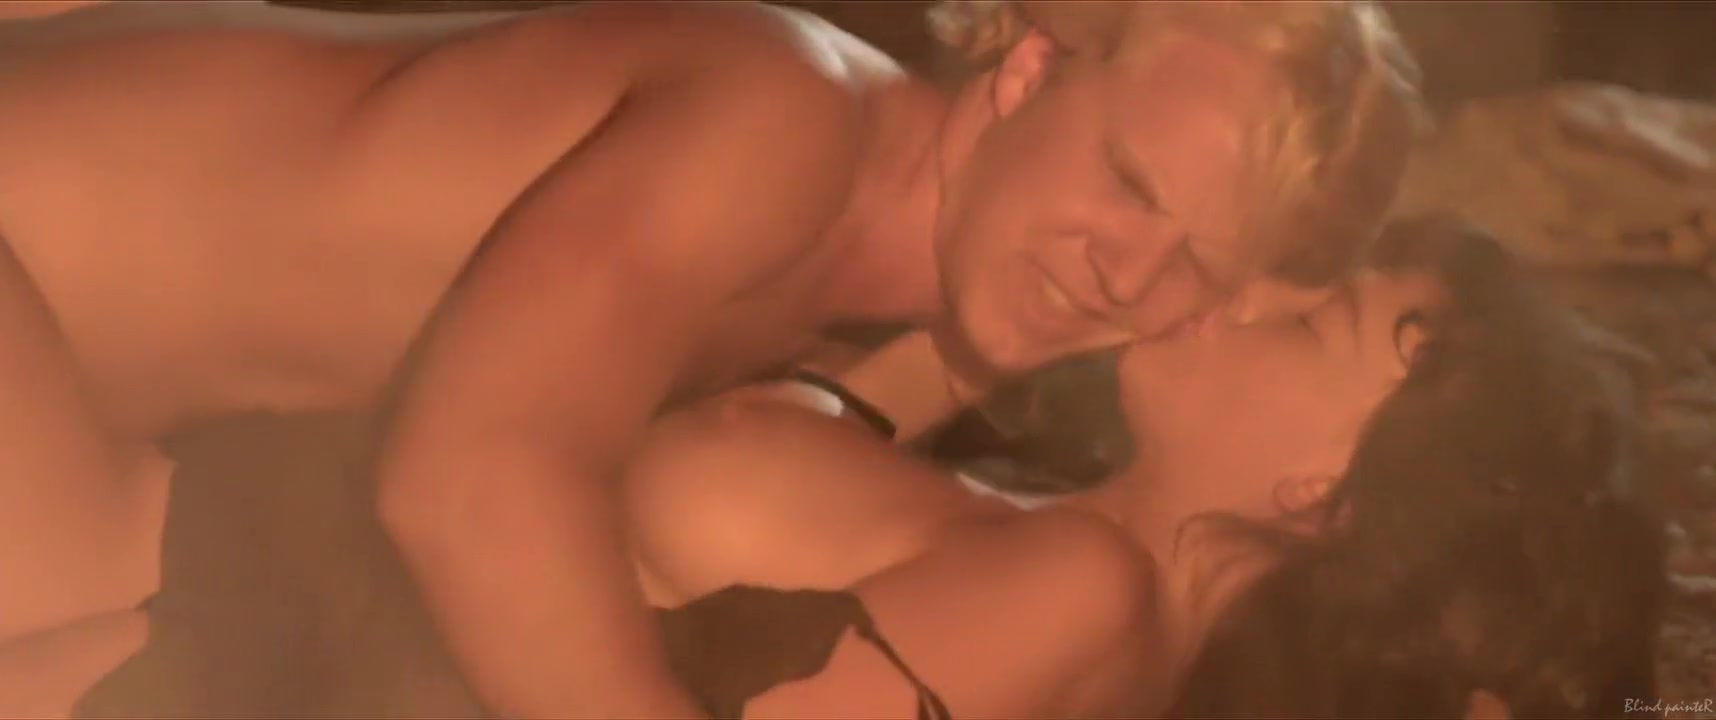 Porn clips Being needy in a relationship men